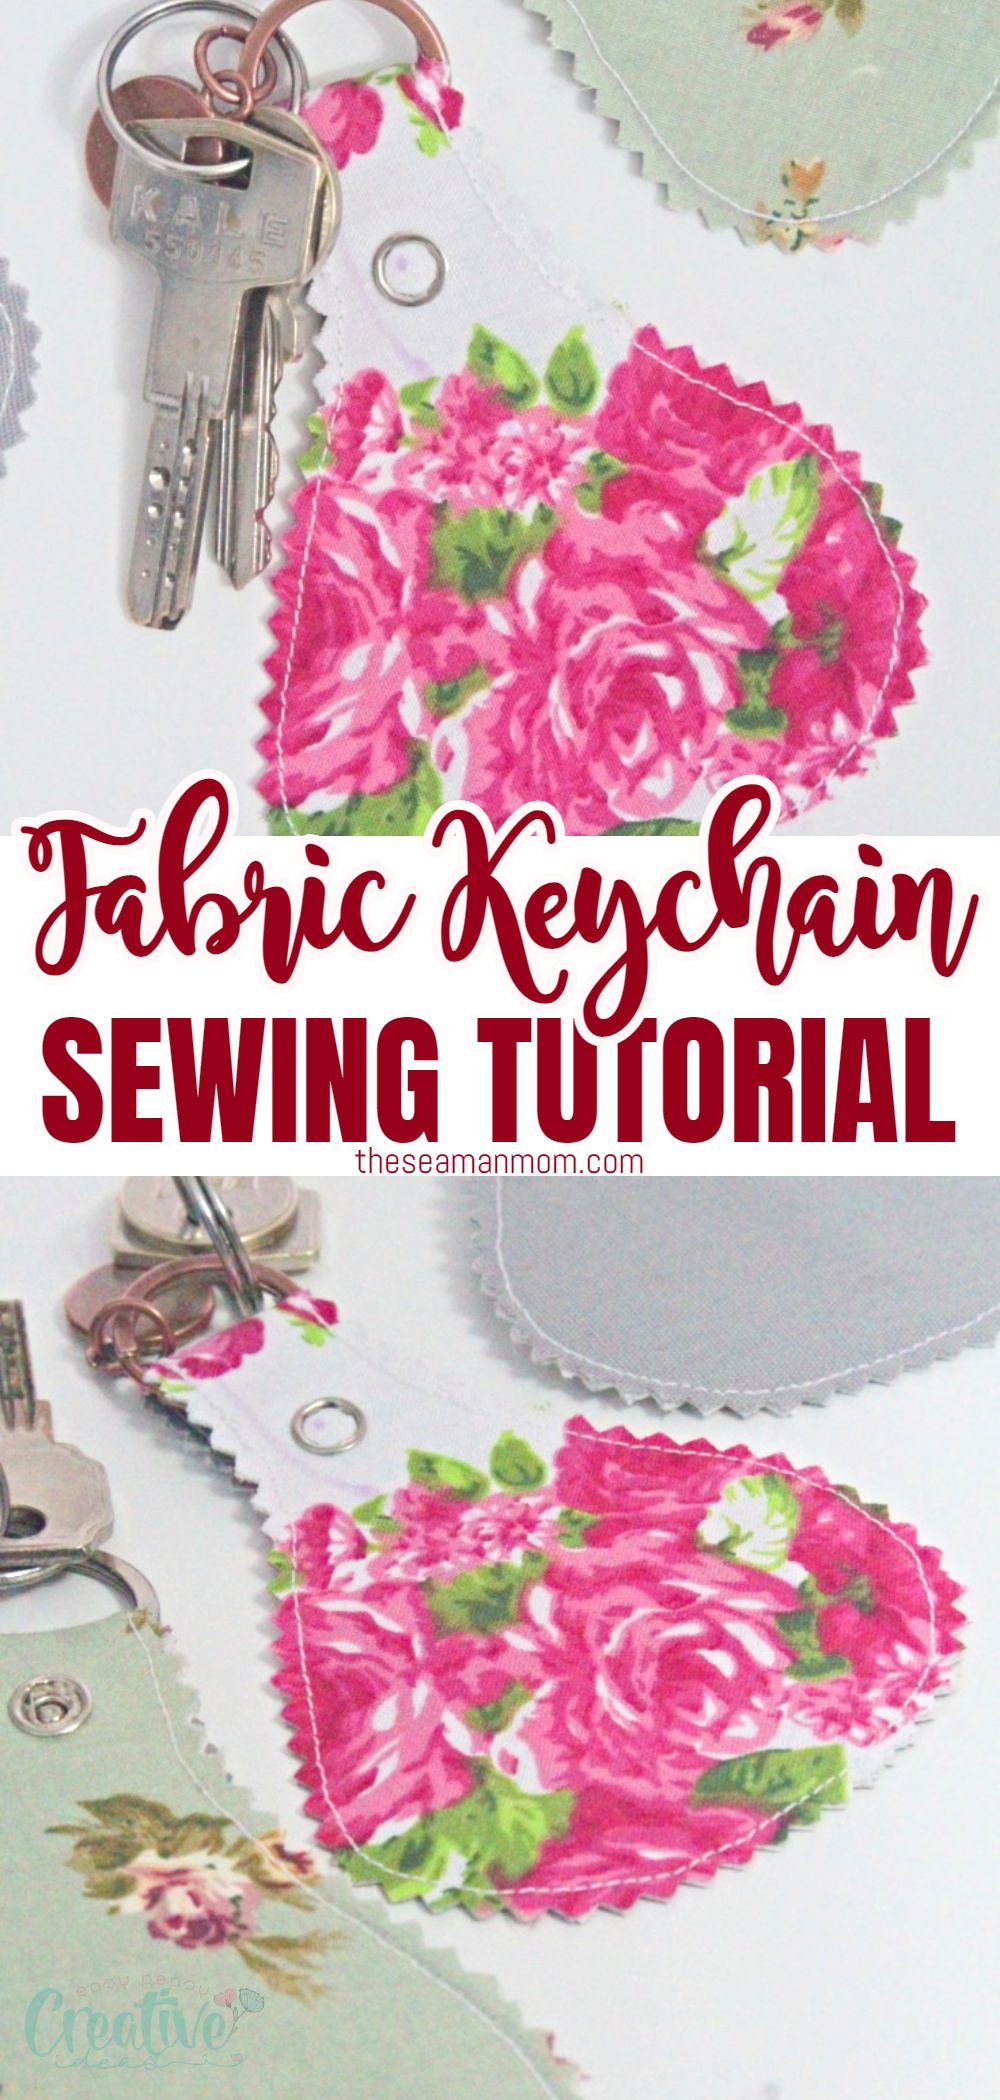 Love cute fabric key fob ideas? Make your own adorable keychains with this easy fabric keychain DIY! These homemade keychains are super quick & easy to make and are a fun project for beginner sewists! via @petroneagu